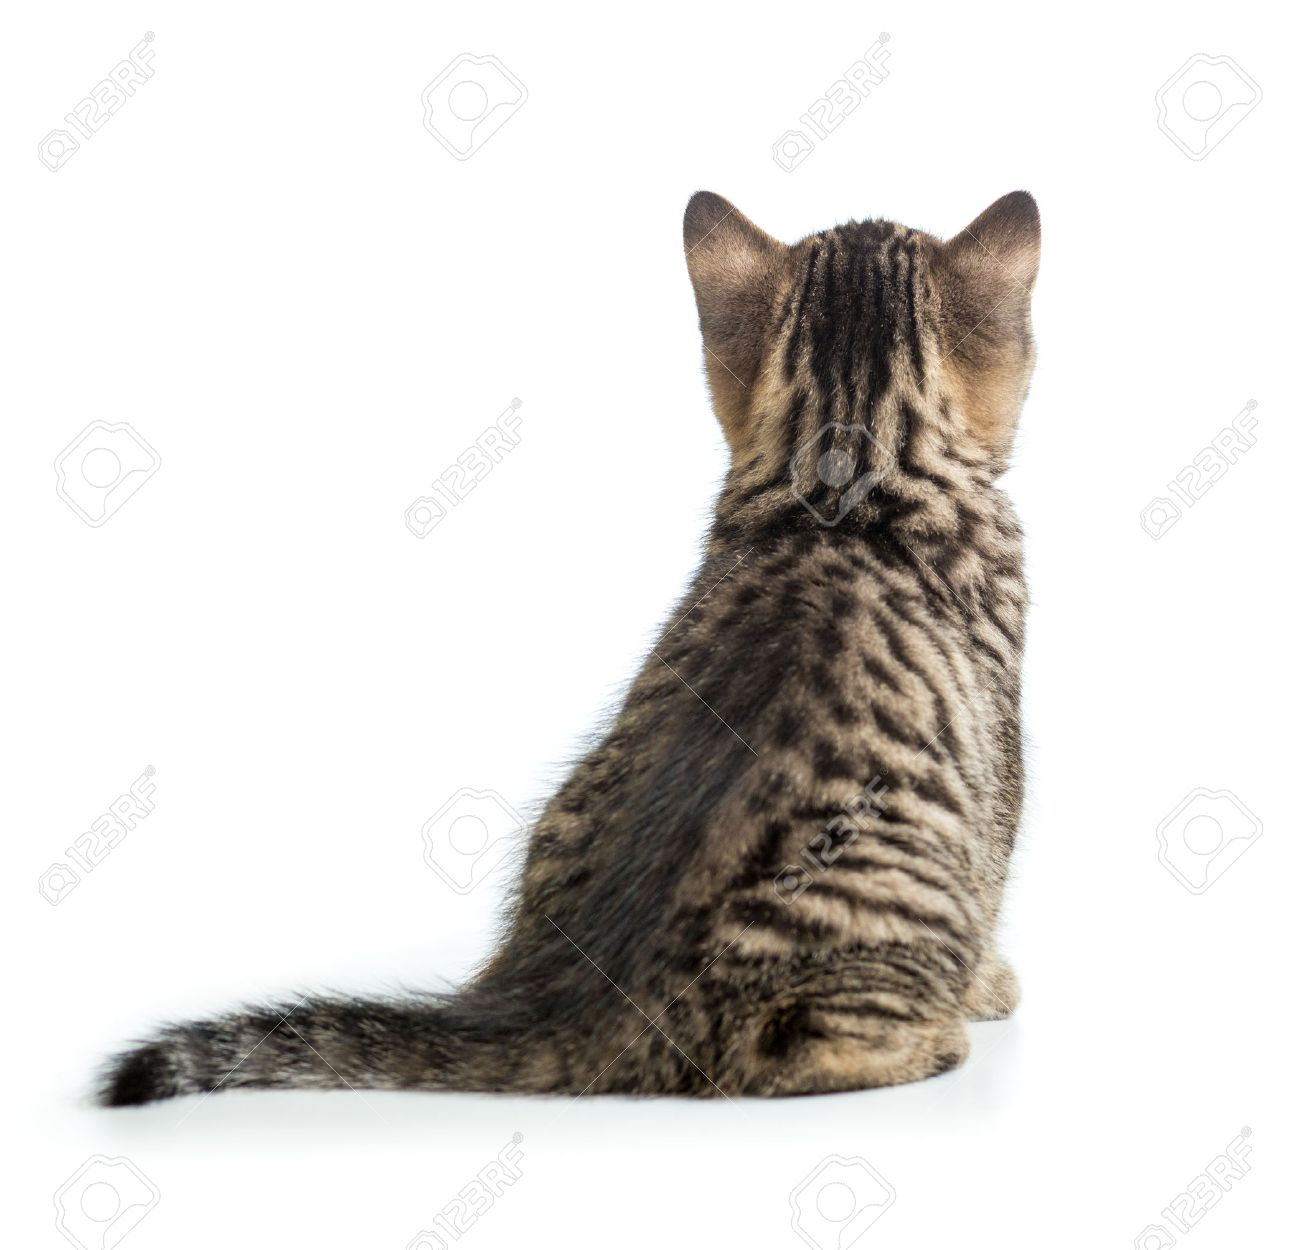 Cat back view sitting isolated - 57346746